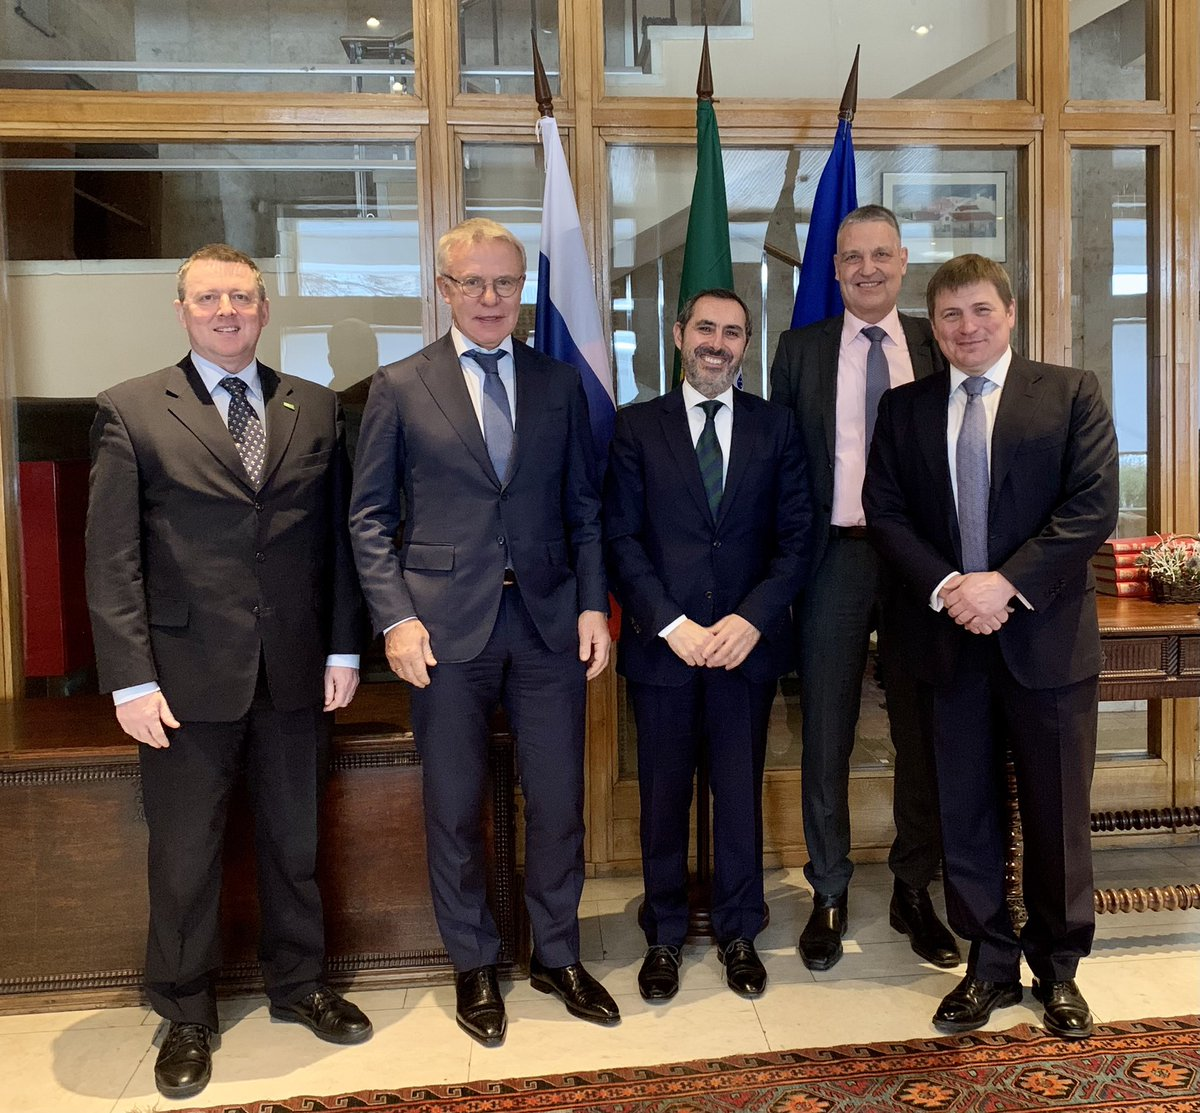 It was our pleasure and honour to meet Slovenia Ambassador to Russia, Portugal Ambassador to Russia, and EU Ambassador to Russia to discuss #ClimateChange, #biodiversity, and global #sustainableeconomic recovery.